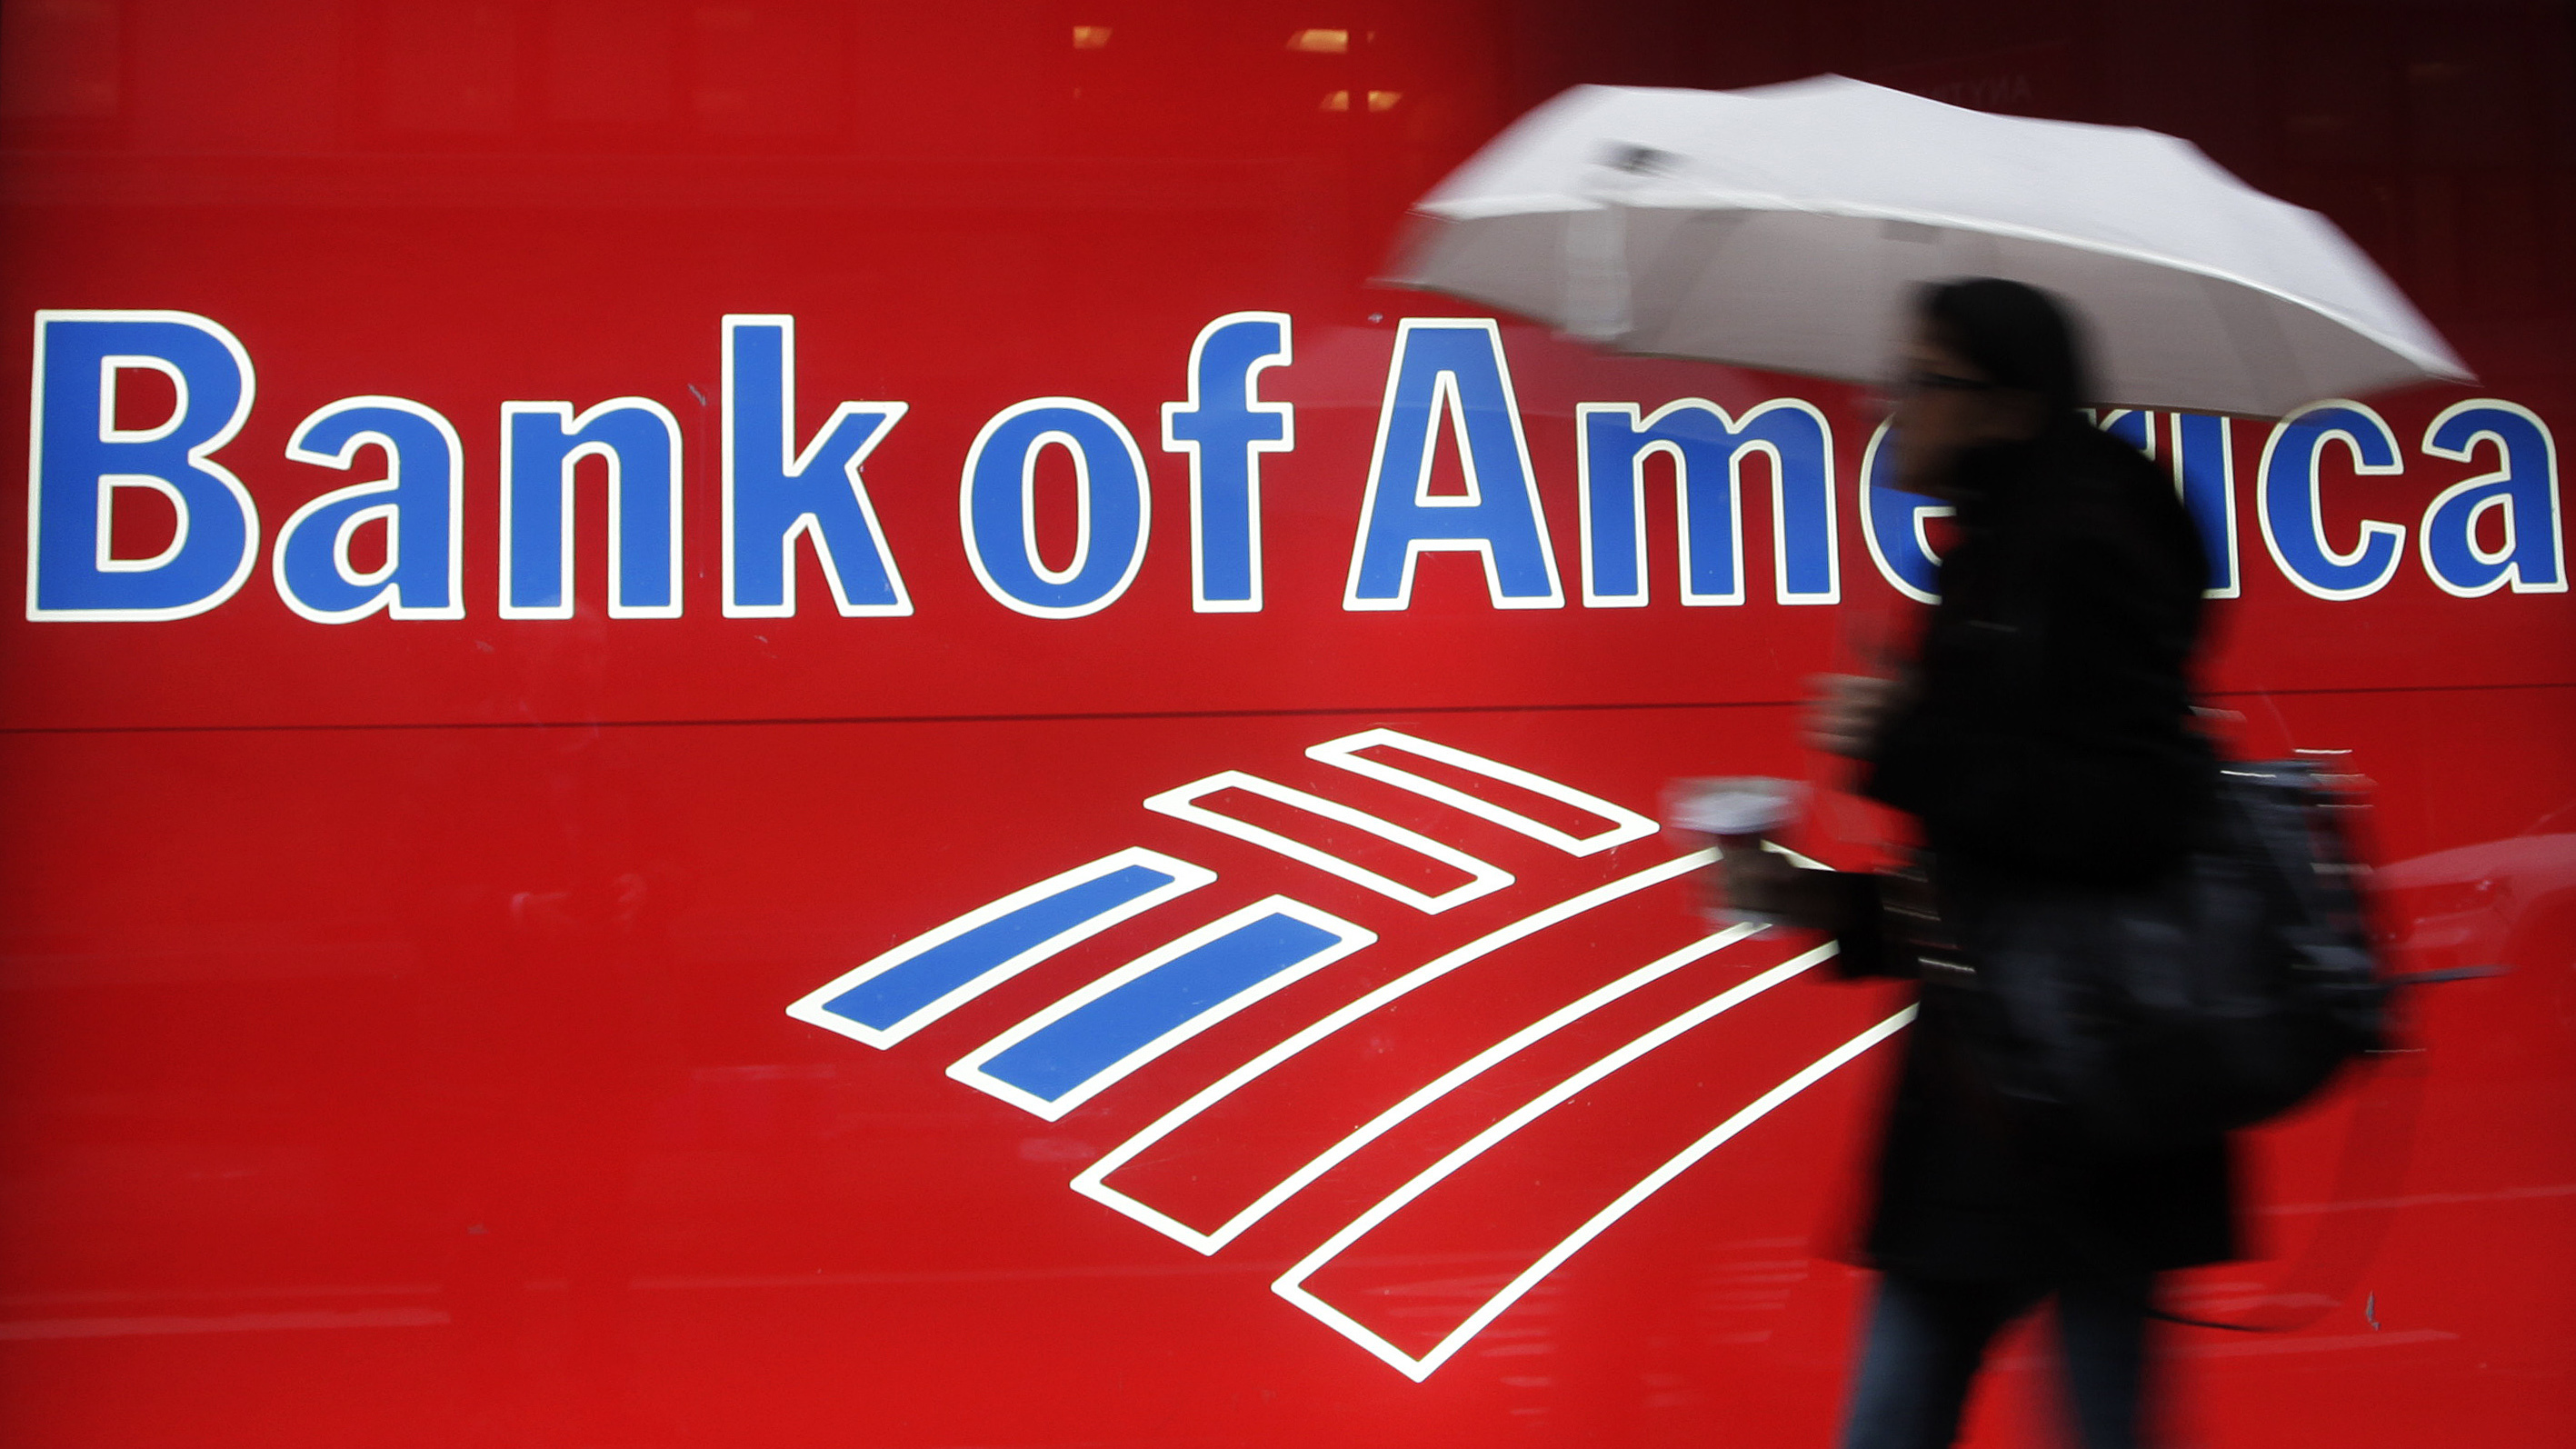 Bank of America eliminating free checking accounts